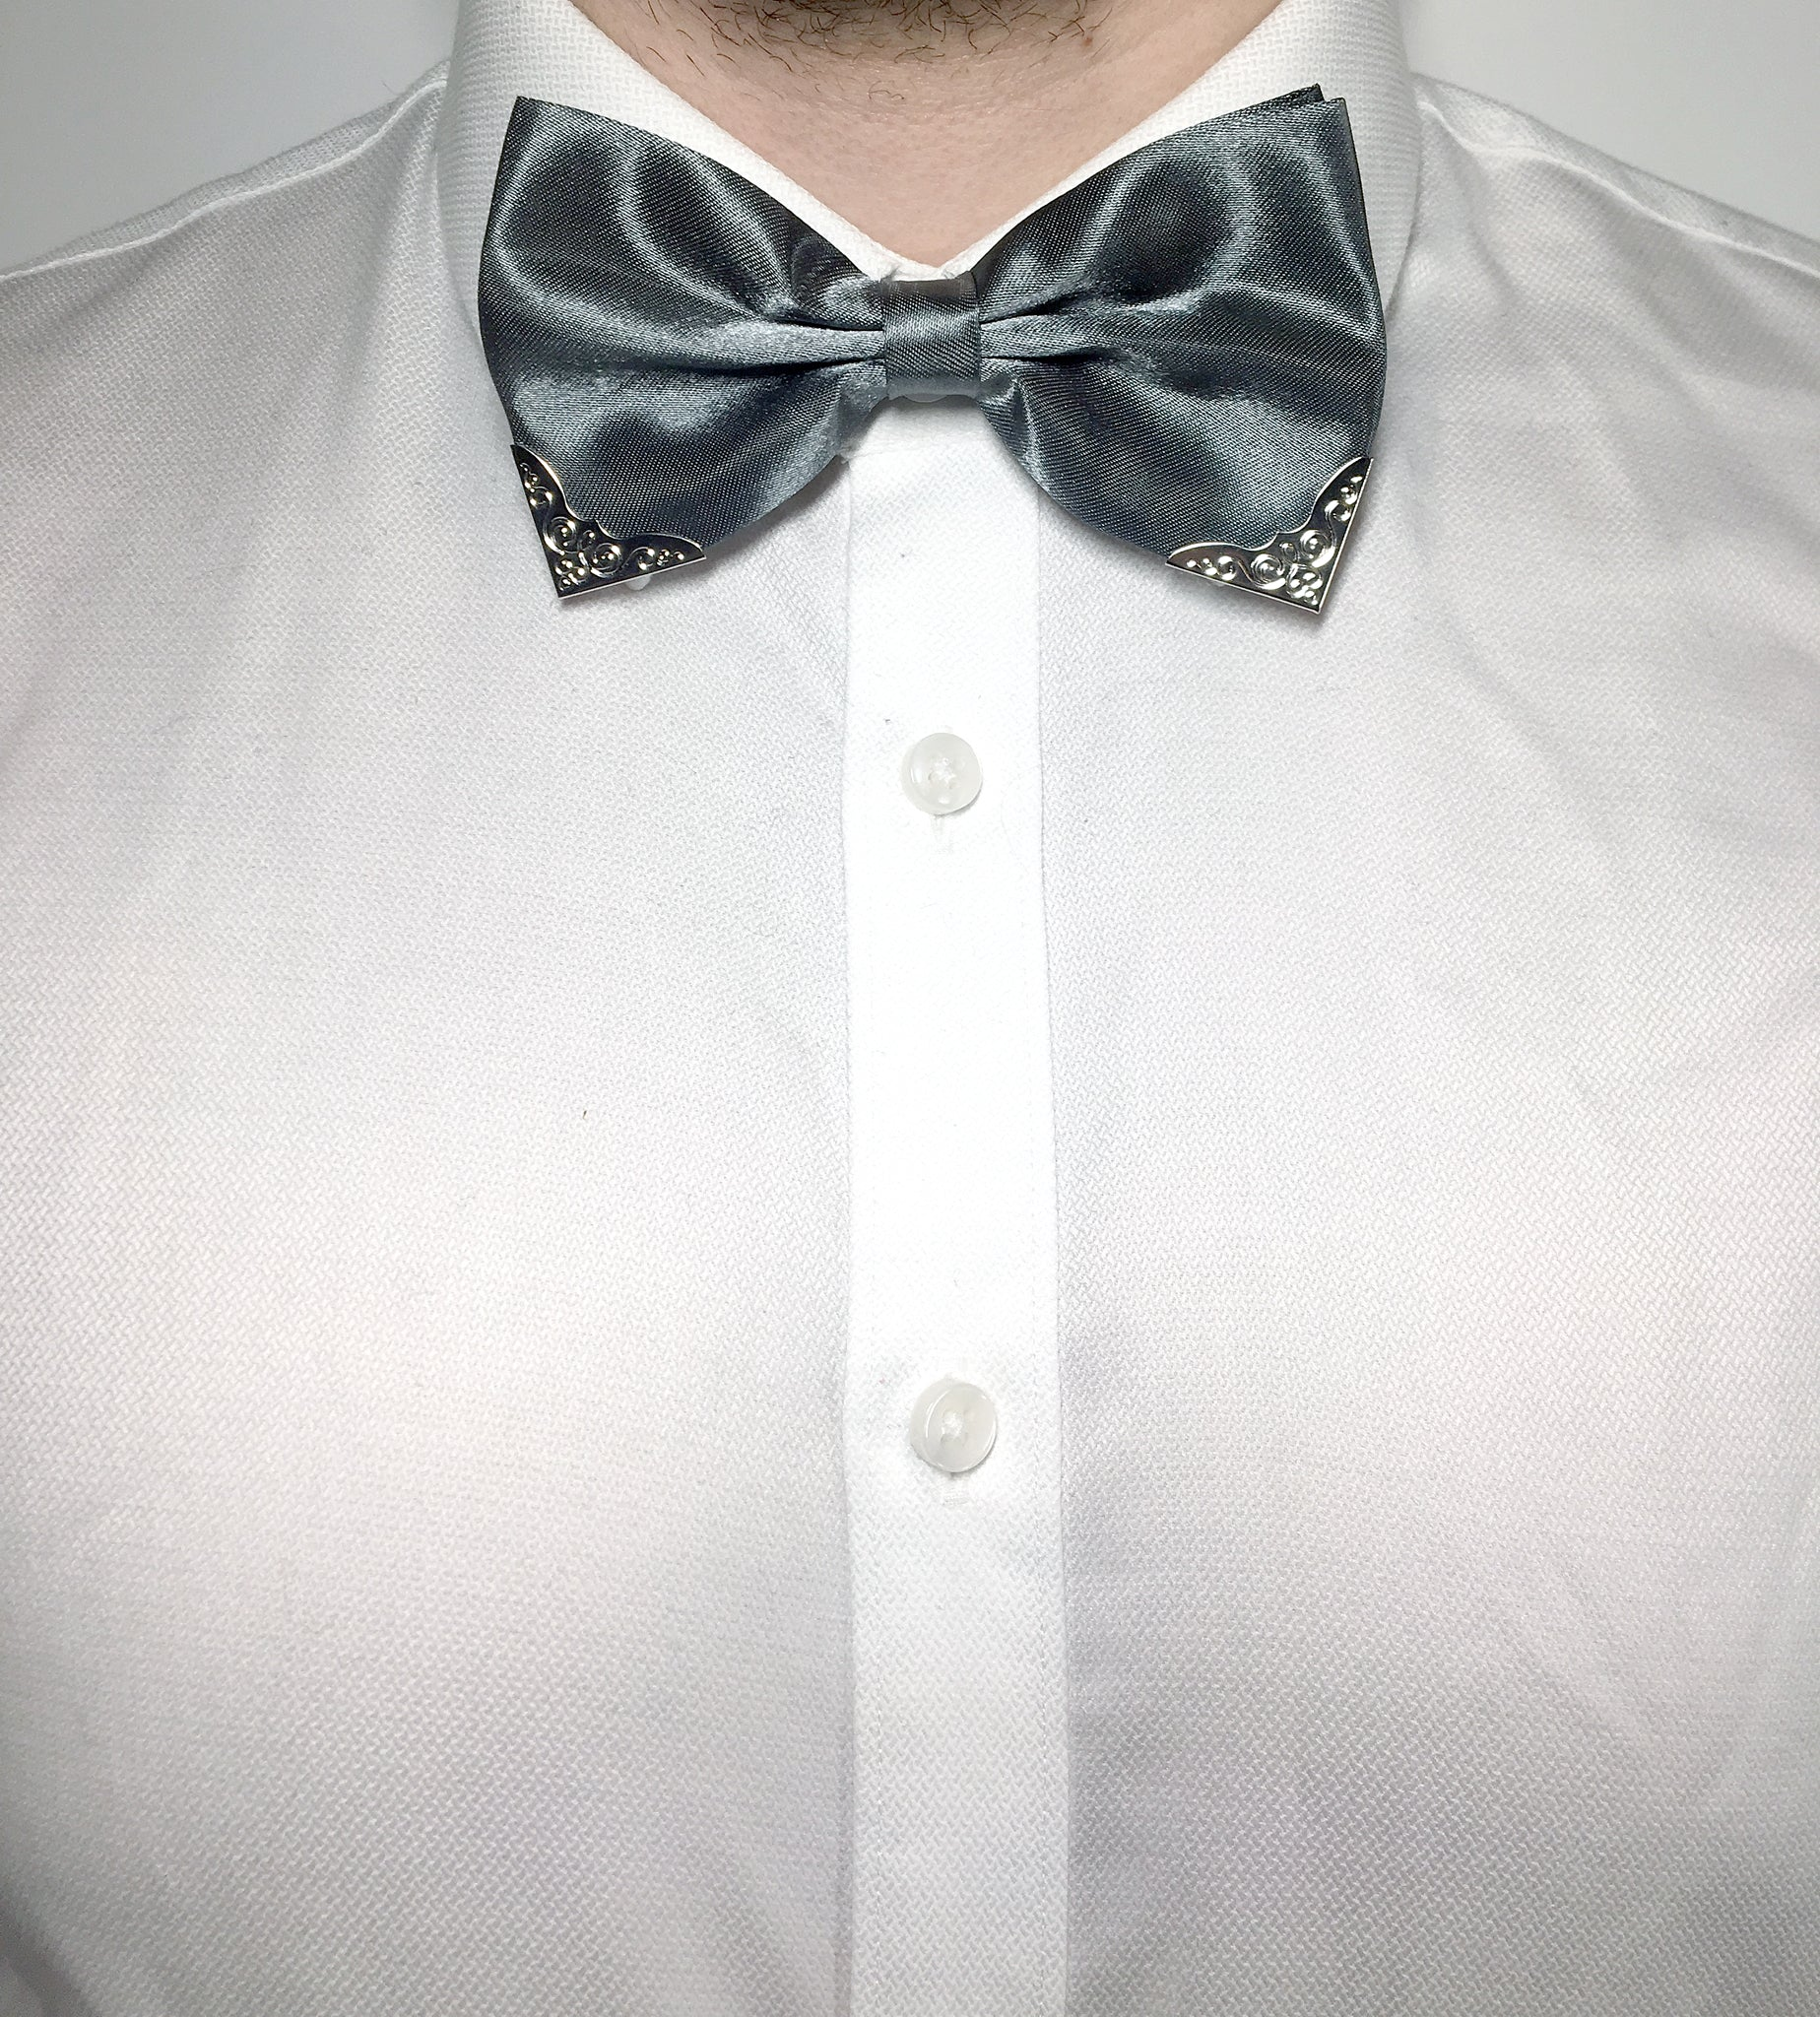 Shiny grey bow tie for gentlemen with metal corner piece